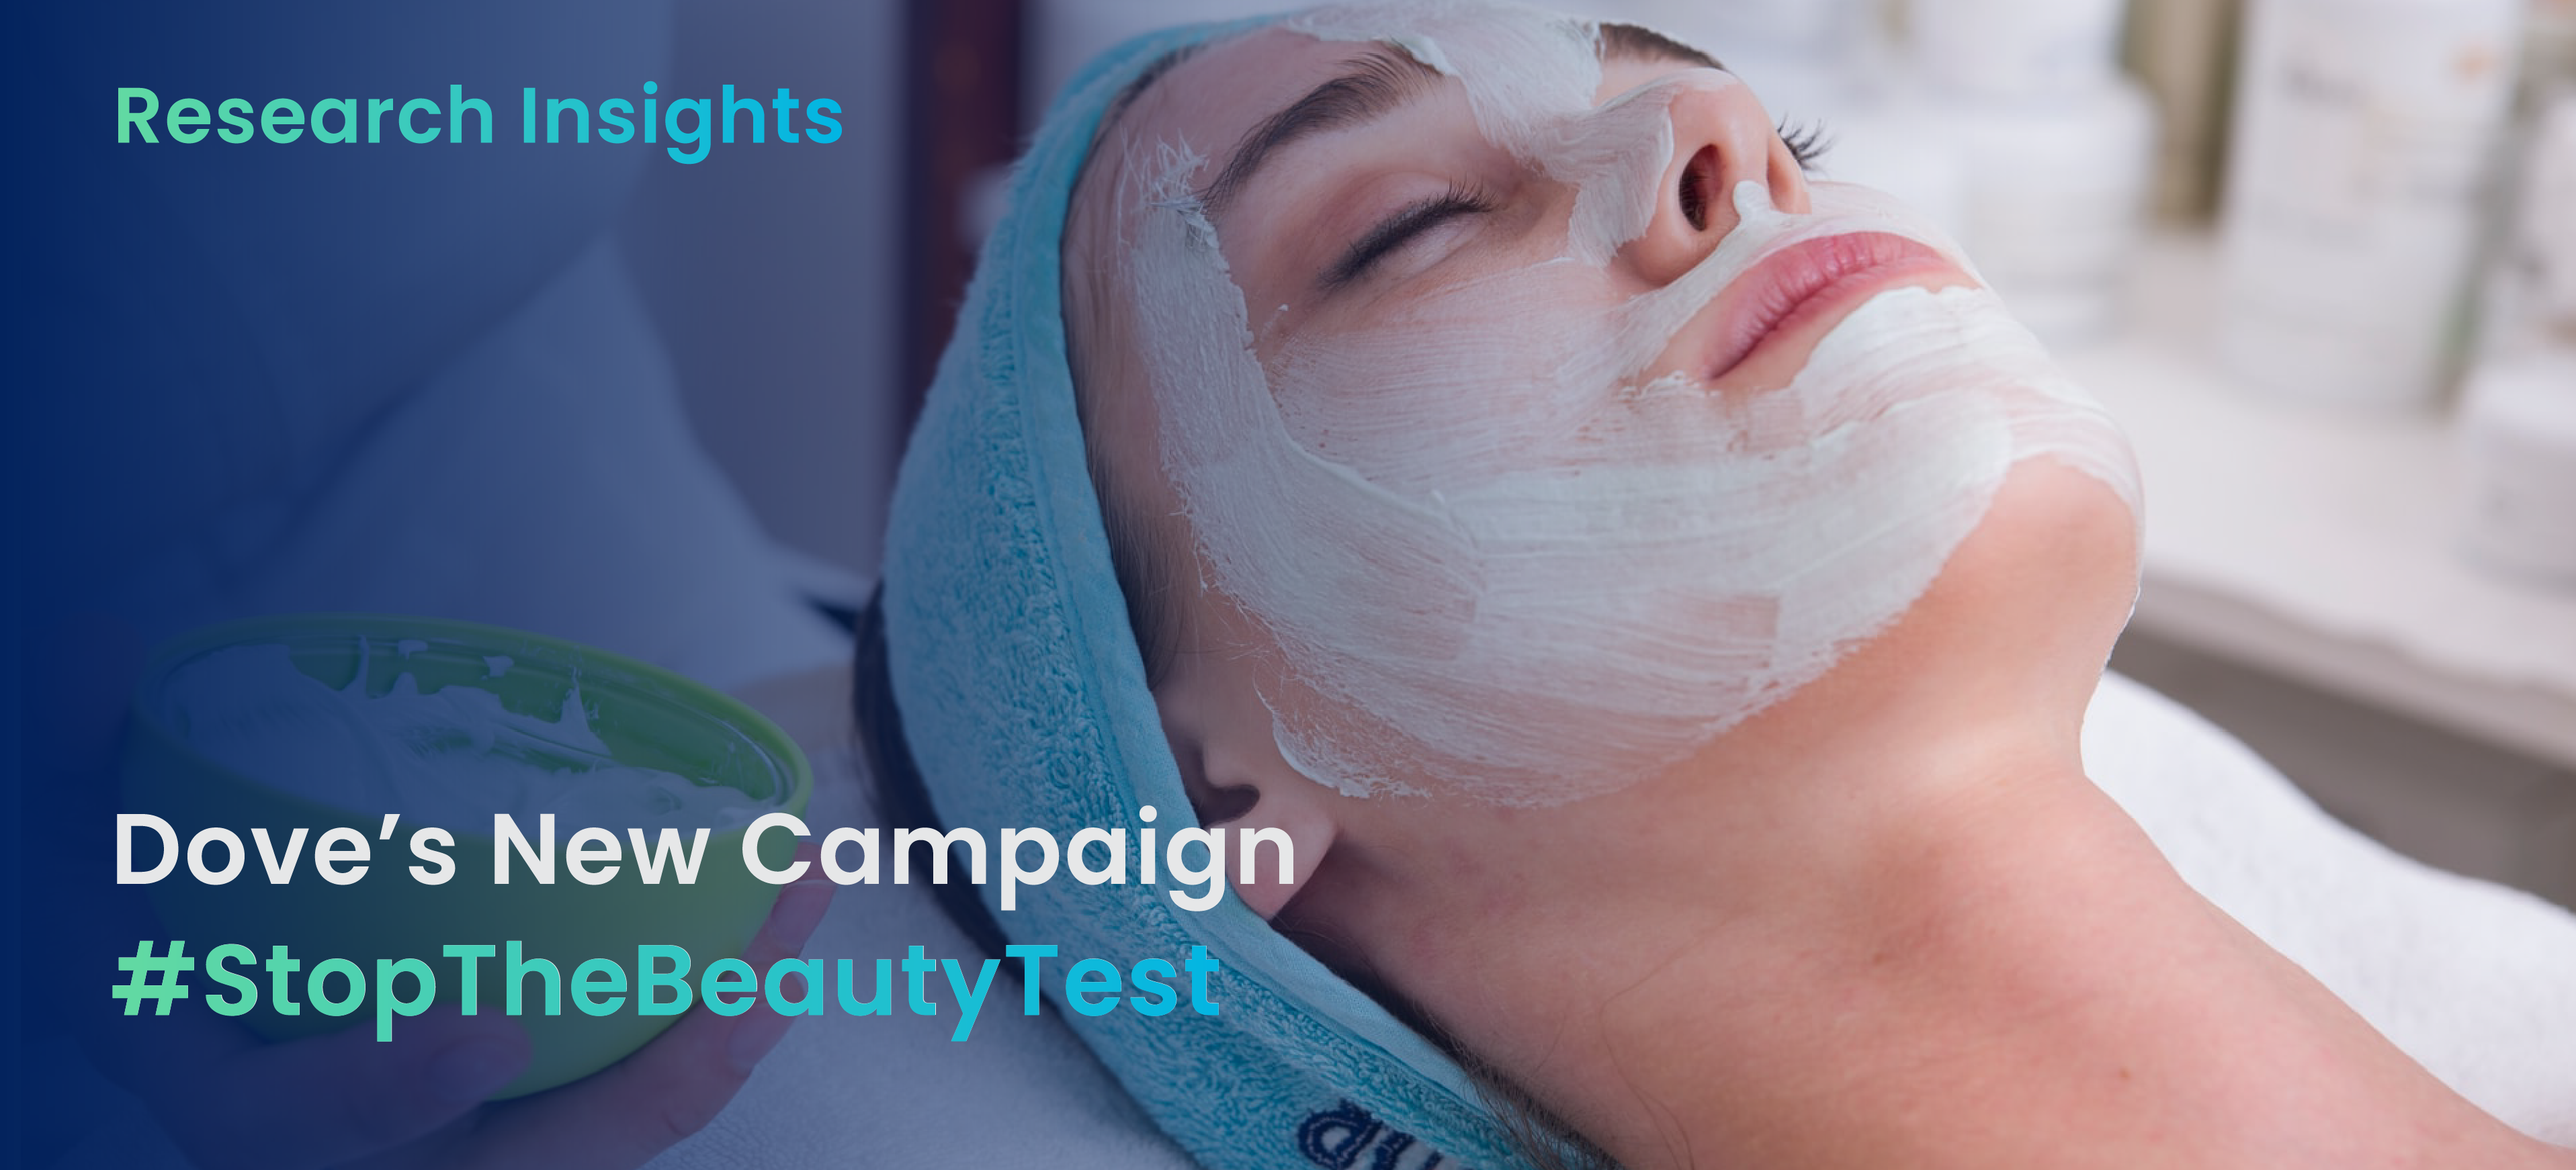 Emotion-Driven Insights For Dove's #StopTheBeautyTest Ad